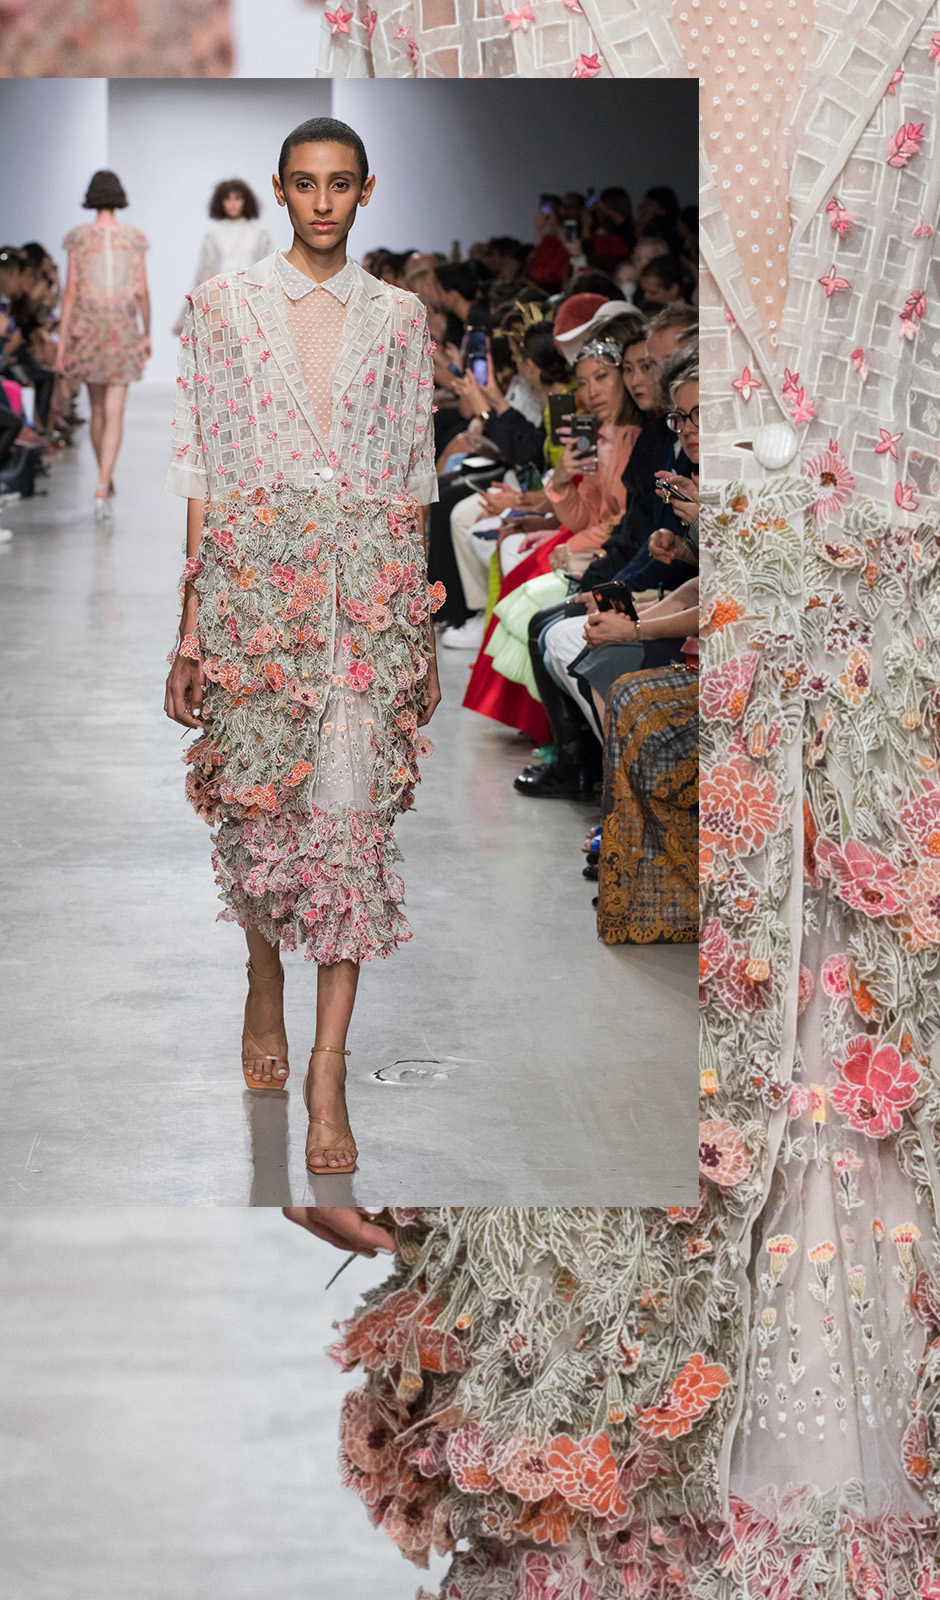 Rahul_Mishra_Spring_Summer_2020_SS20_Paris_Fashion_Week_Runway_RTW_12